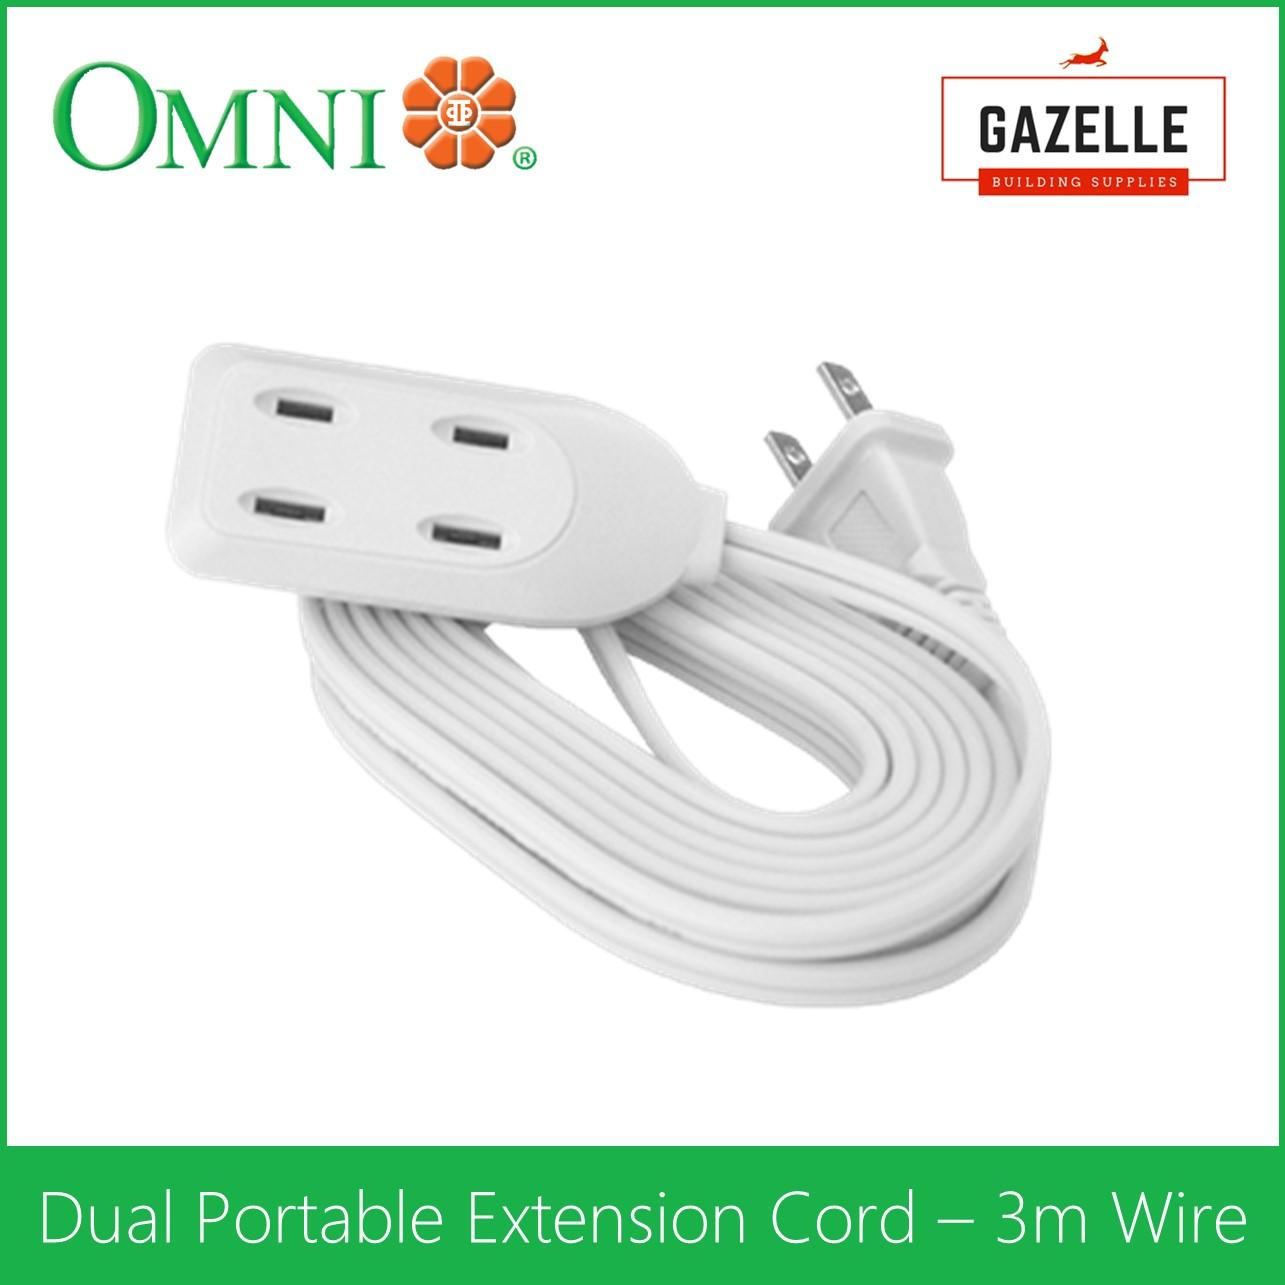 Extension Cord For Sale Electrical Cables Prices Brands Review Wiring A 45 Amp Cooker Switch Omni Dual Portable 3 Meter Wire Wdp 303